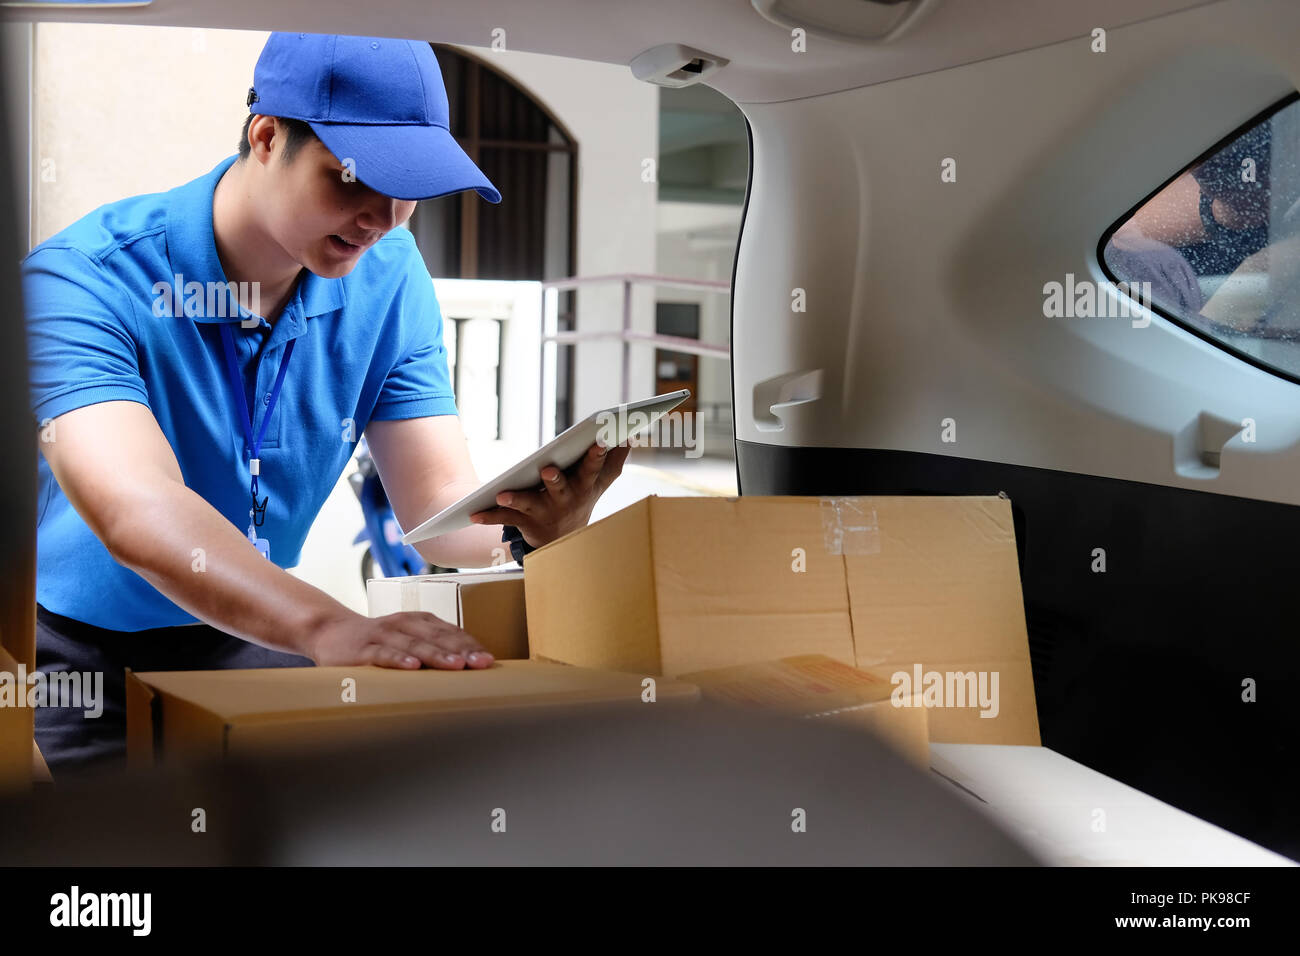 Delivery man working with box in car, Asian man working job. - Stock Image